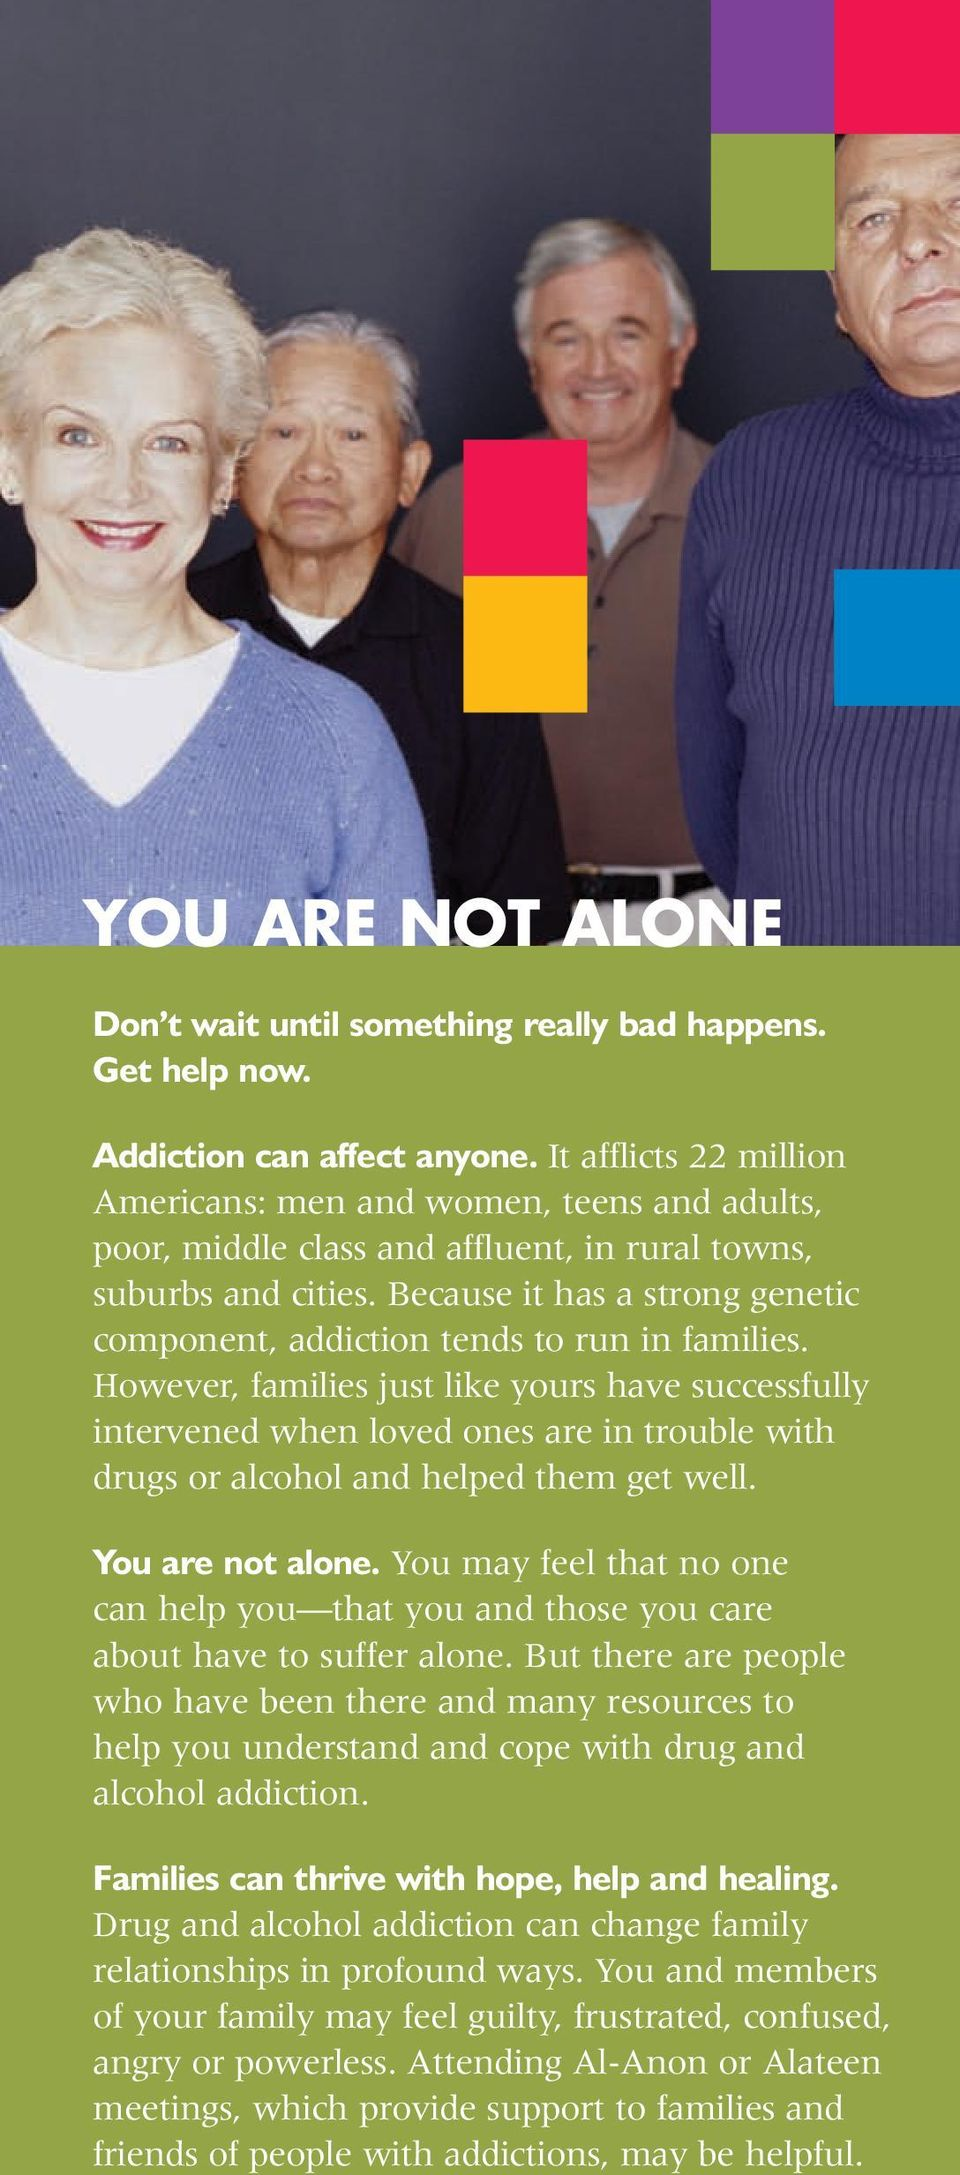 Because it has a strong genetic component, addiction tends to run in families.